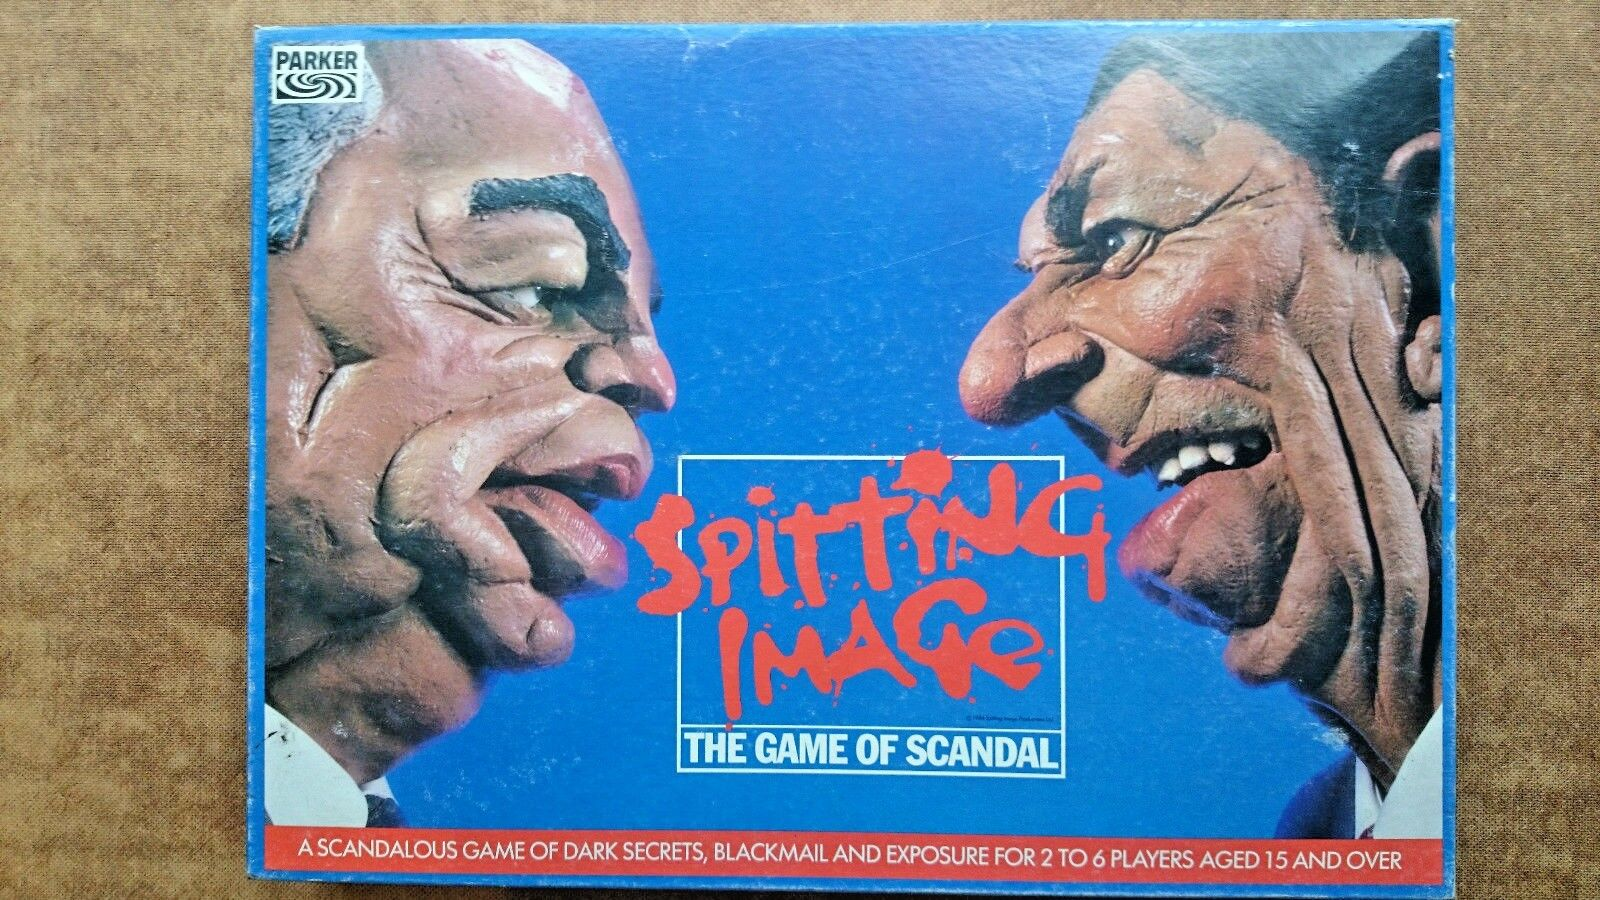 Spitting Image The Game of Scandal  by Parker 1984